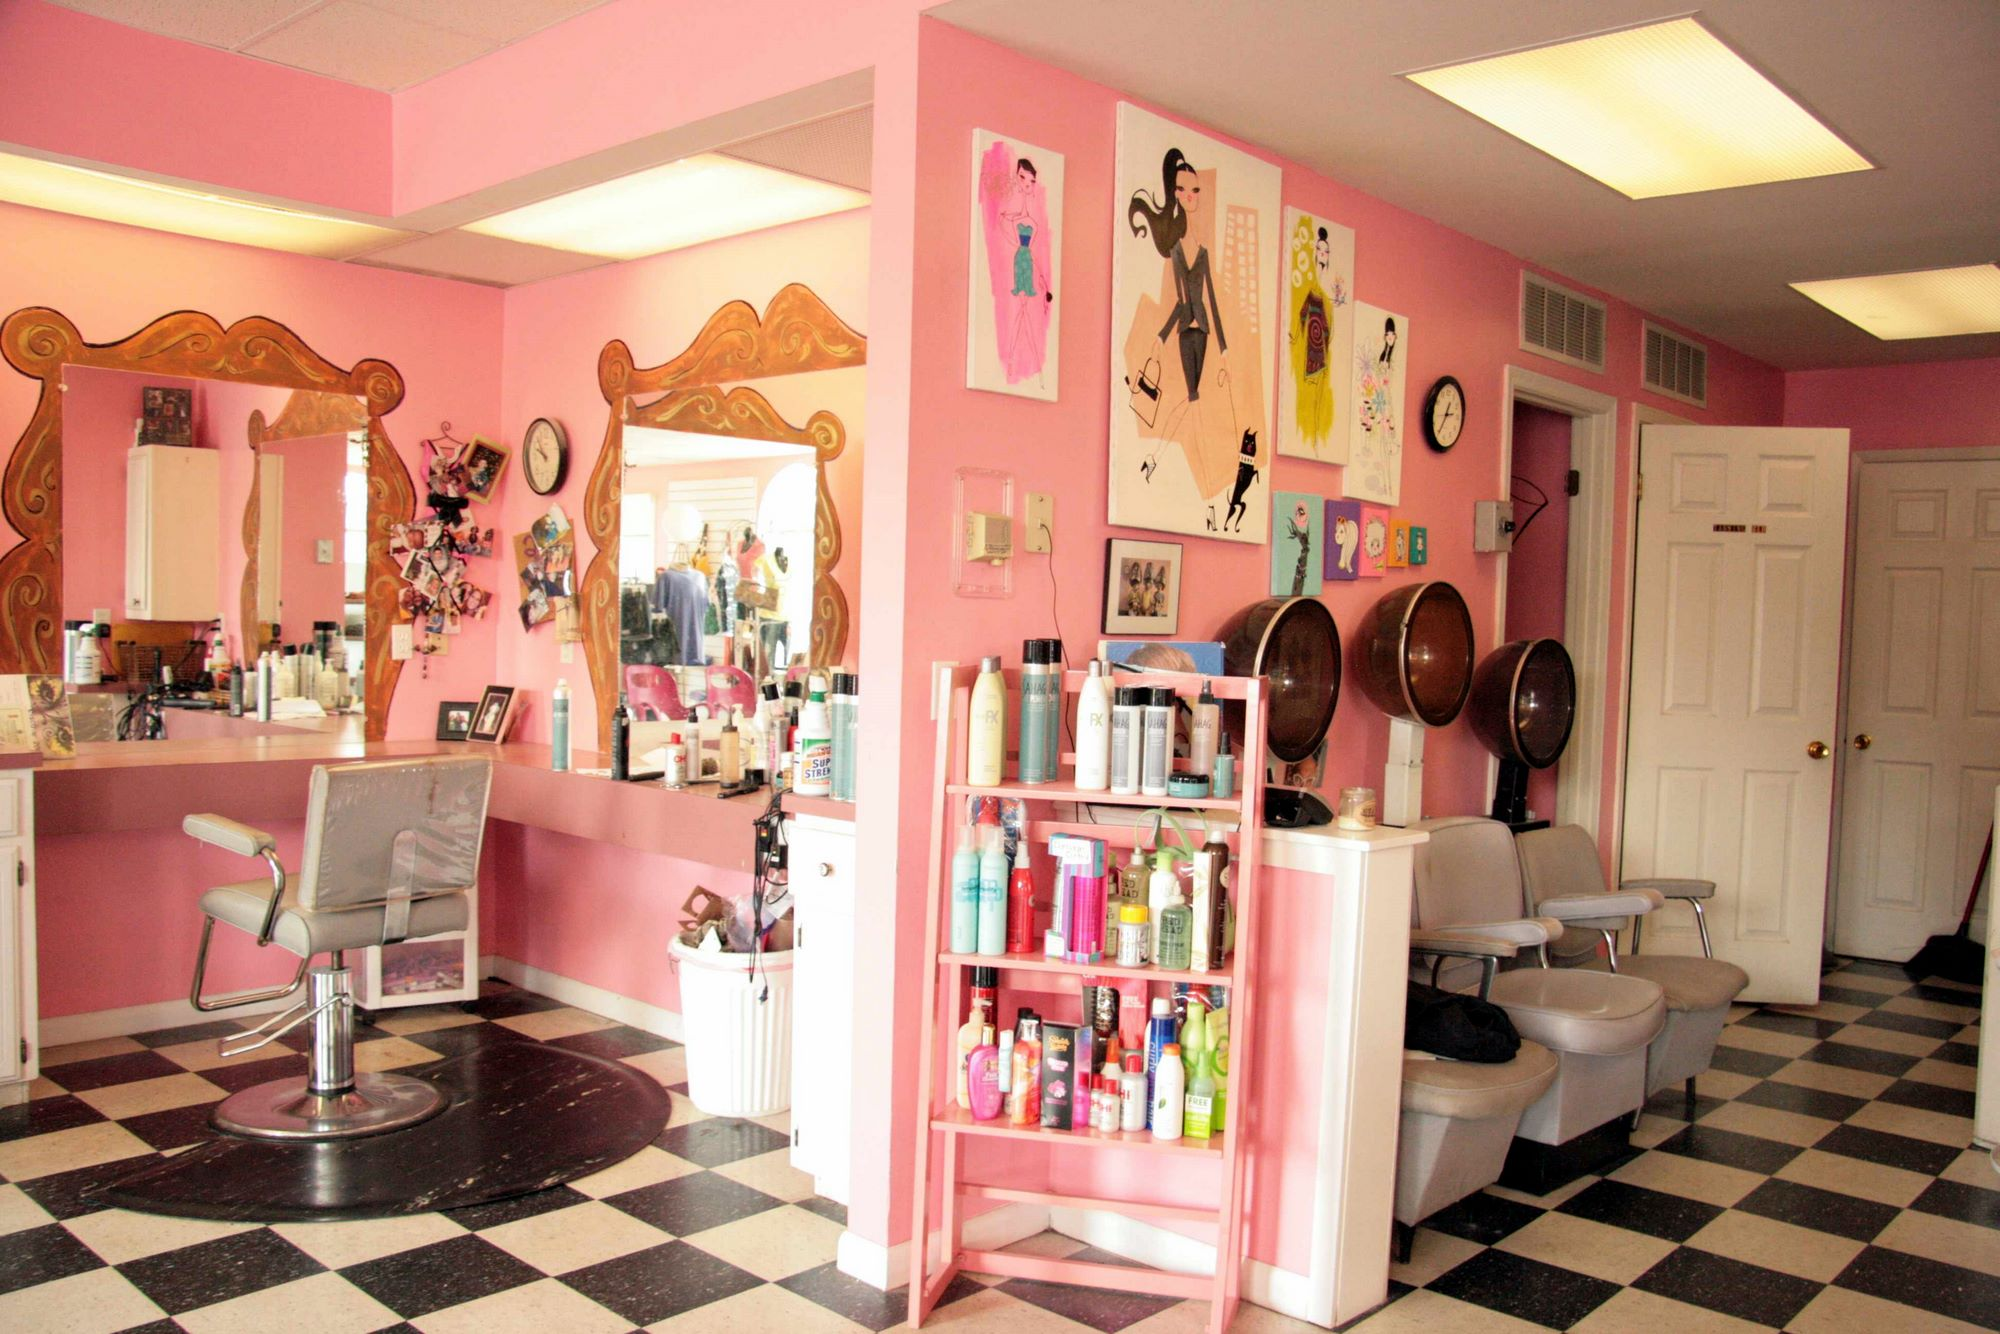 Location photos of tickle pink beauty salon for A beautiful you salon